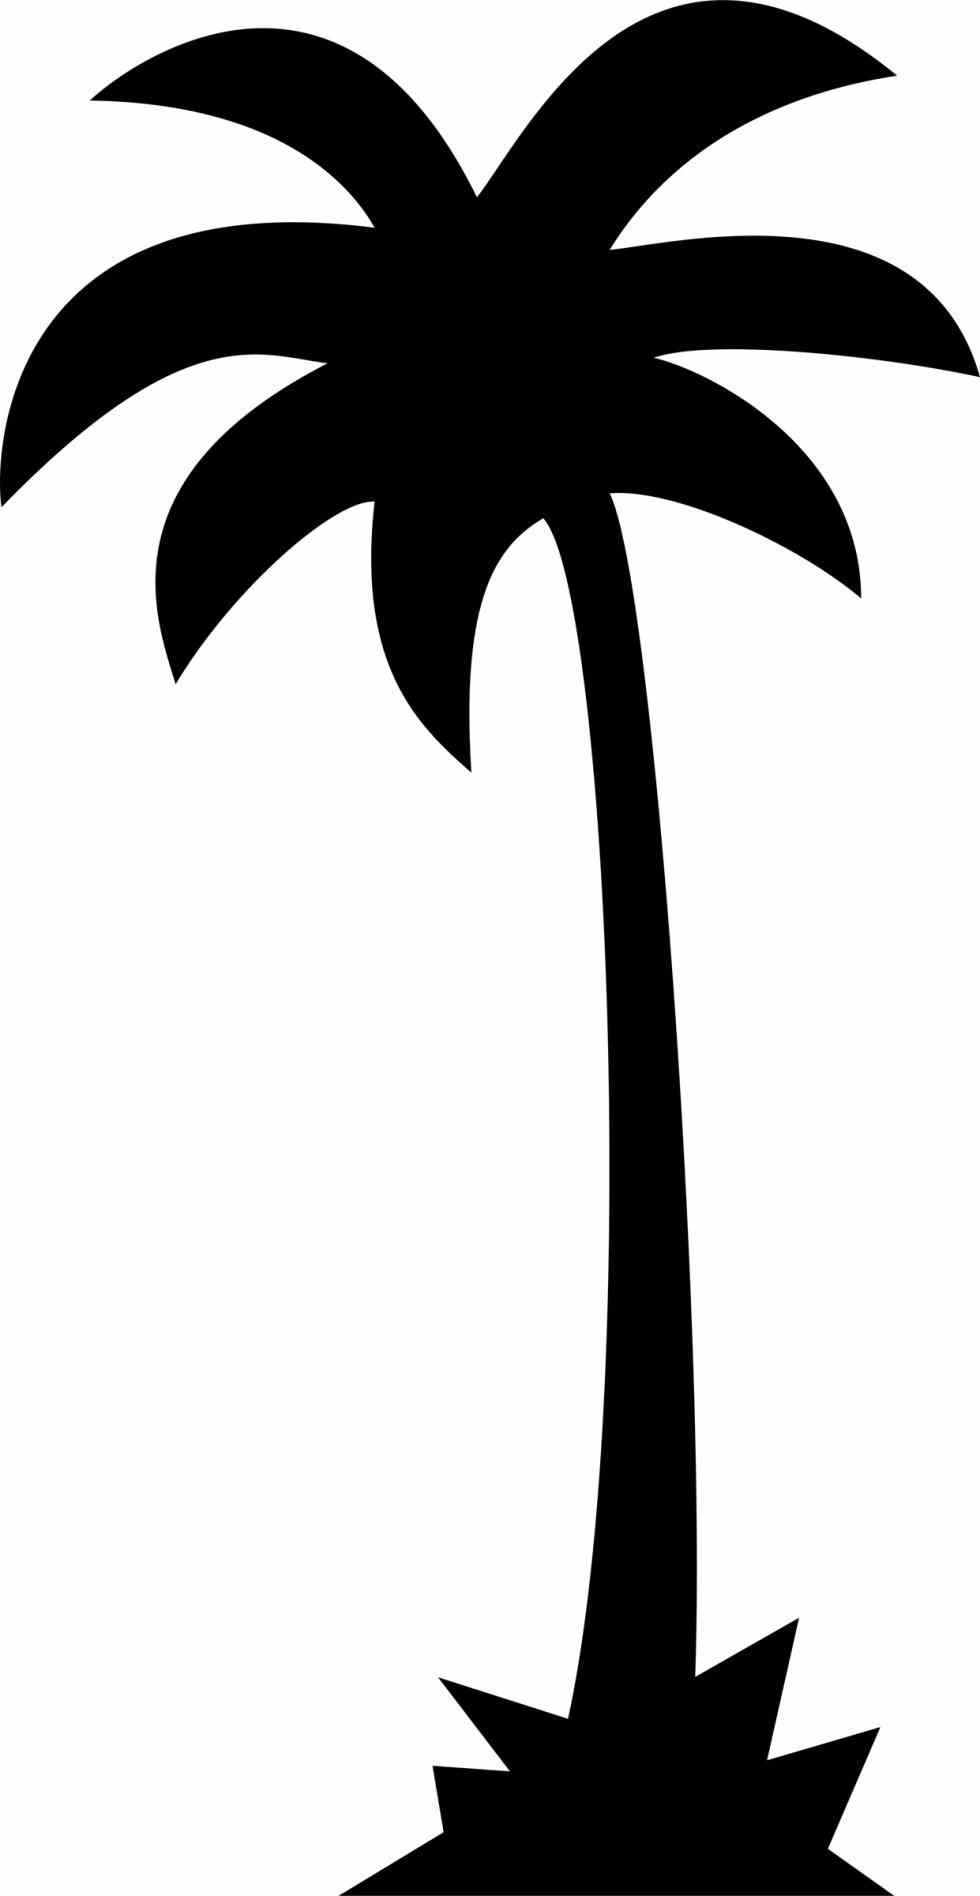 palm tree vector silhouette at getdrawings com free for personal rh getdrawings com palm tree vector art free download palm tree leaf vector art